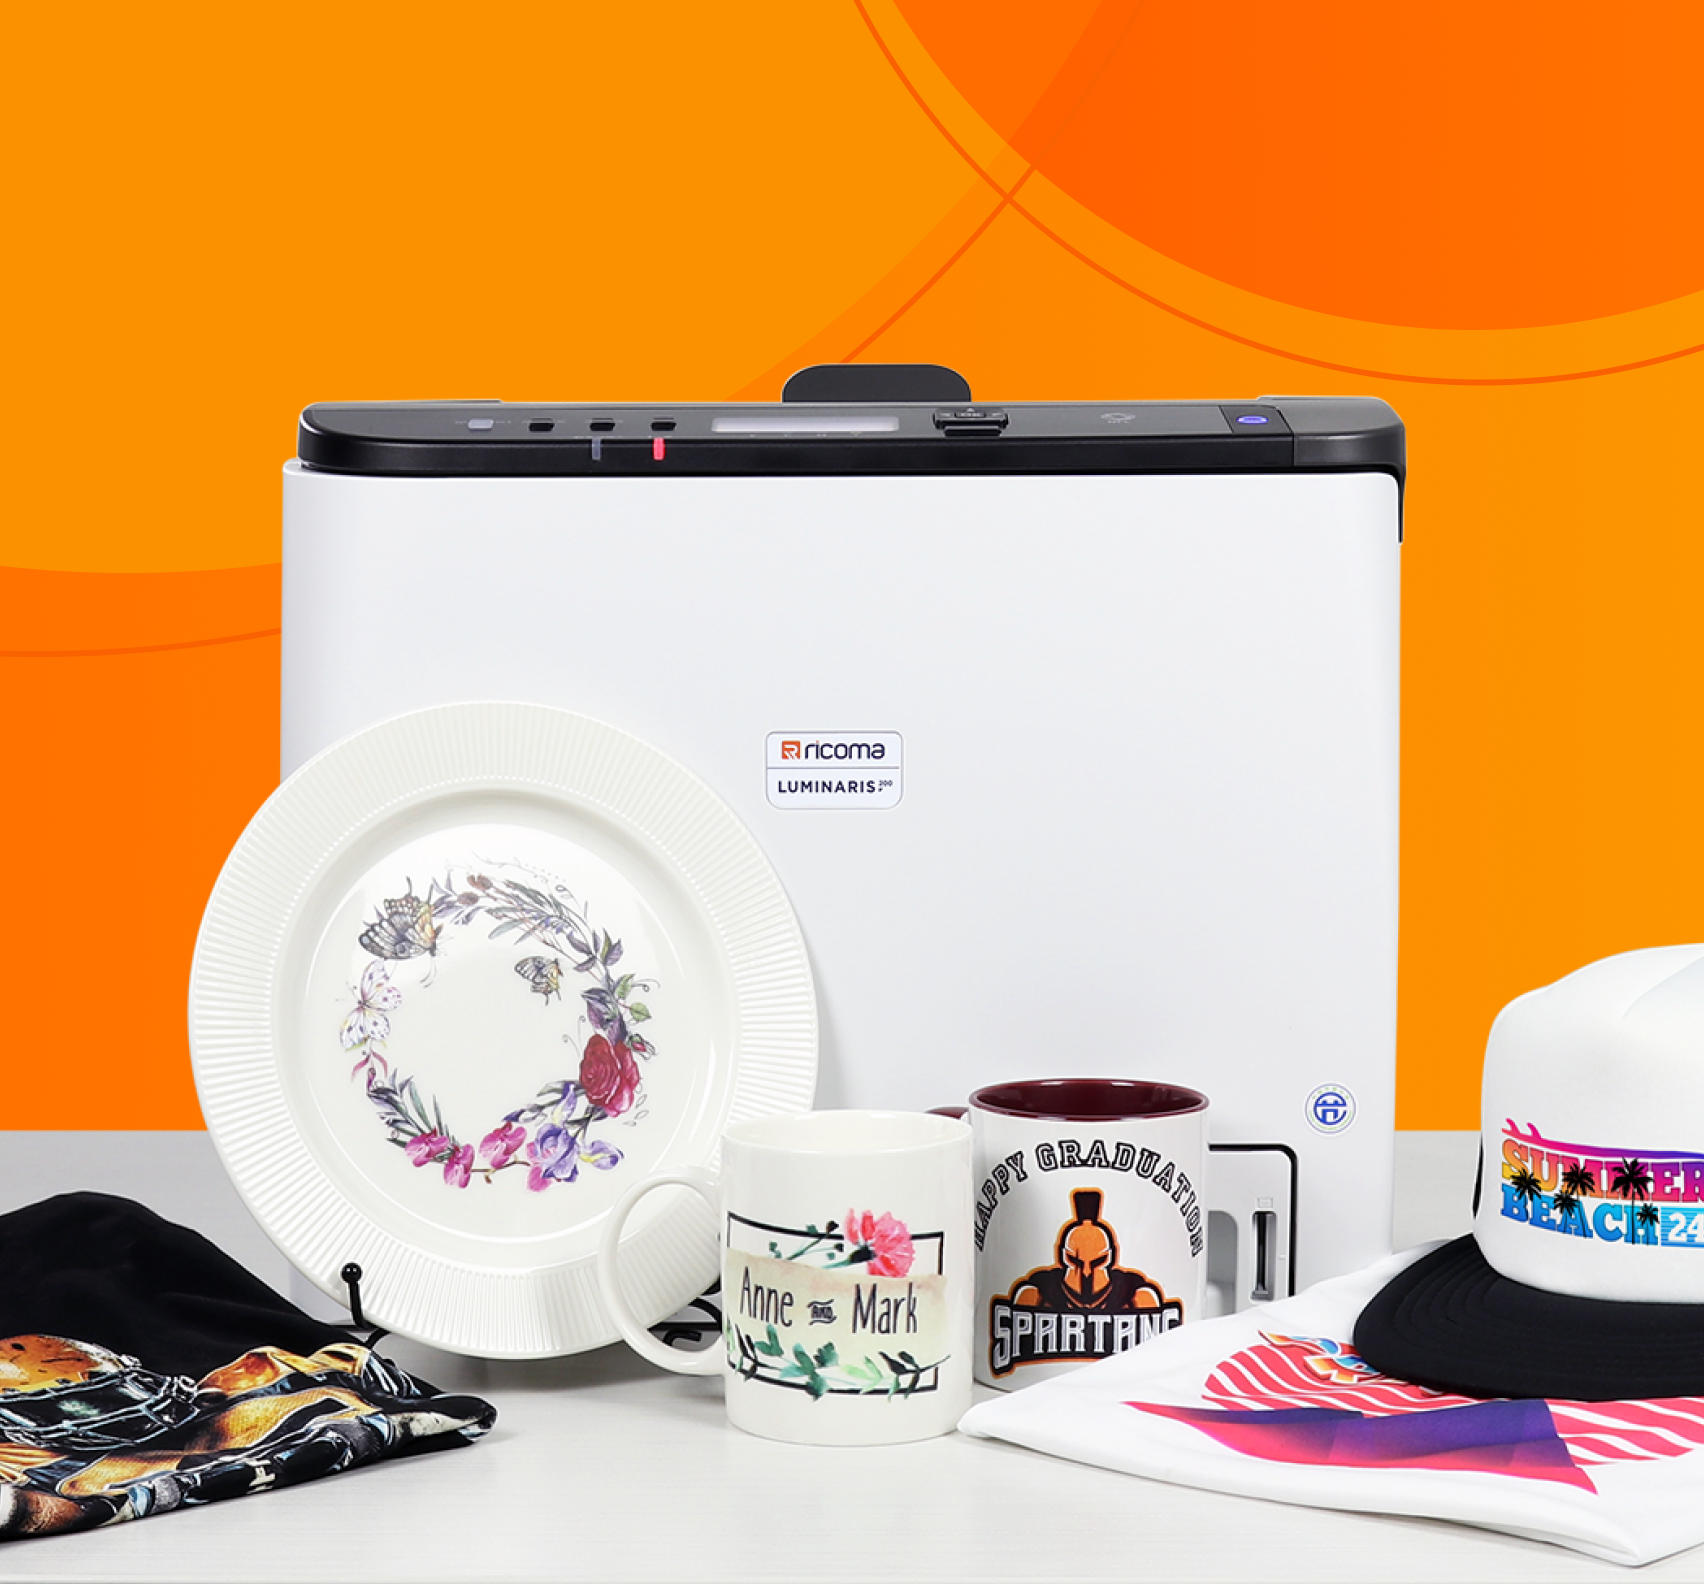 Embroidery Industry Powerhouse Releases Proprietary White Toner Transfer Printer